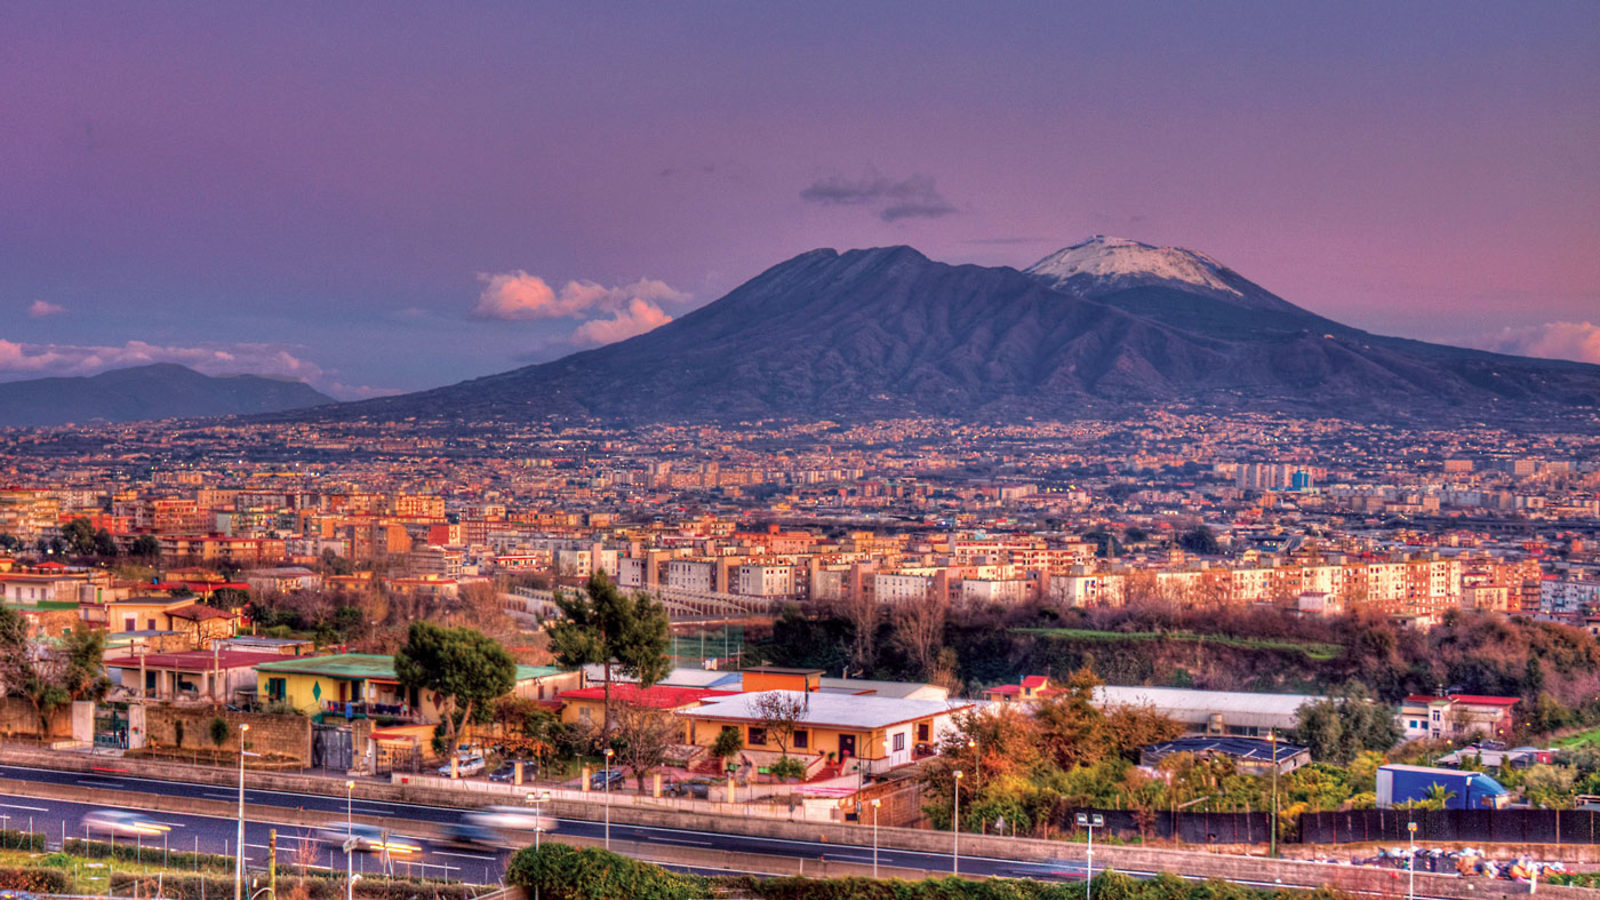 Image of Mount Vesuvius